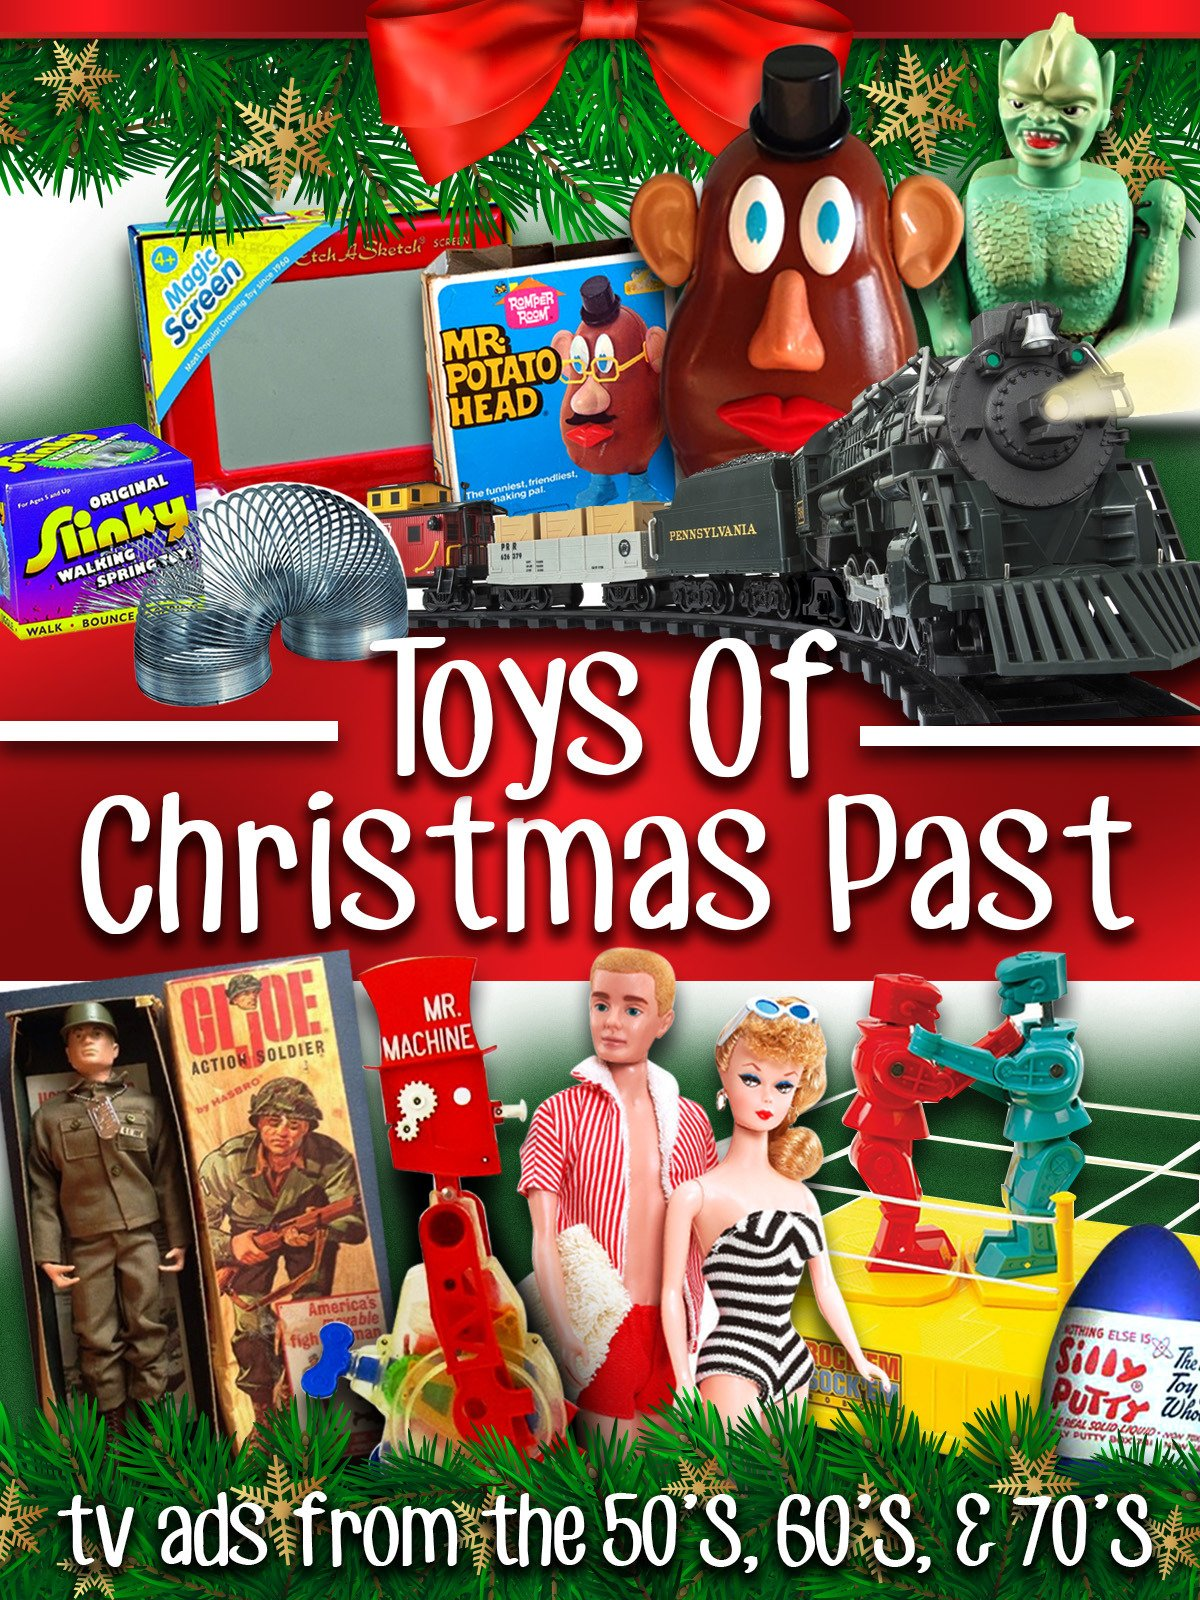 Toys of Christmas Past